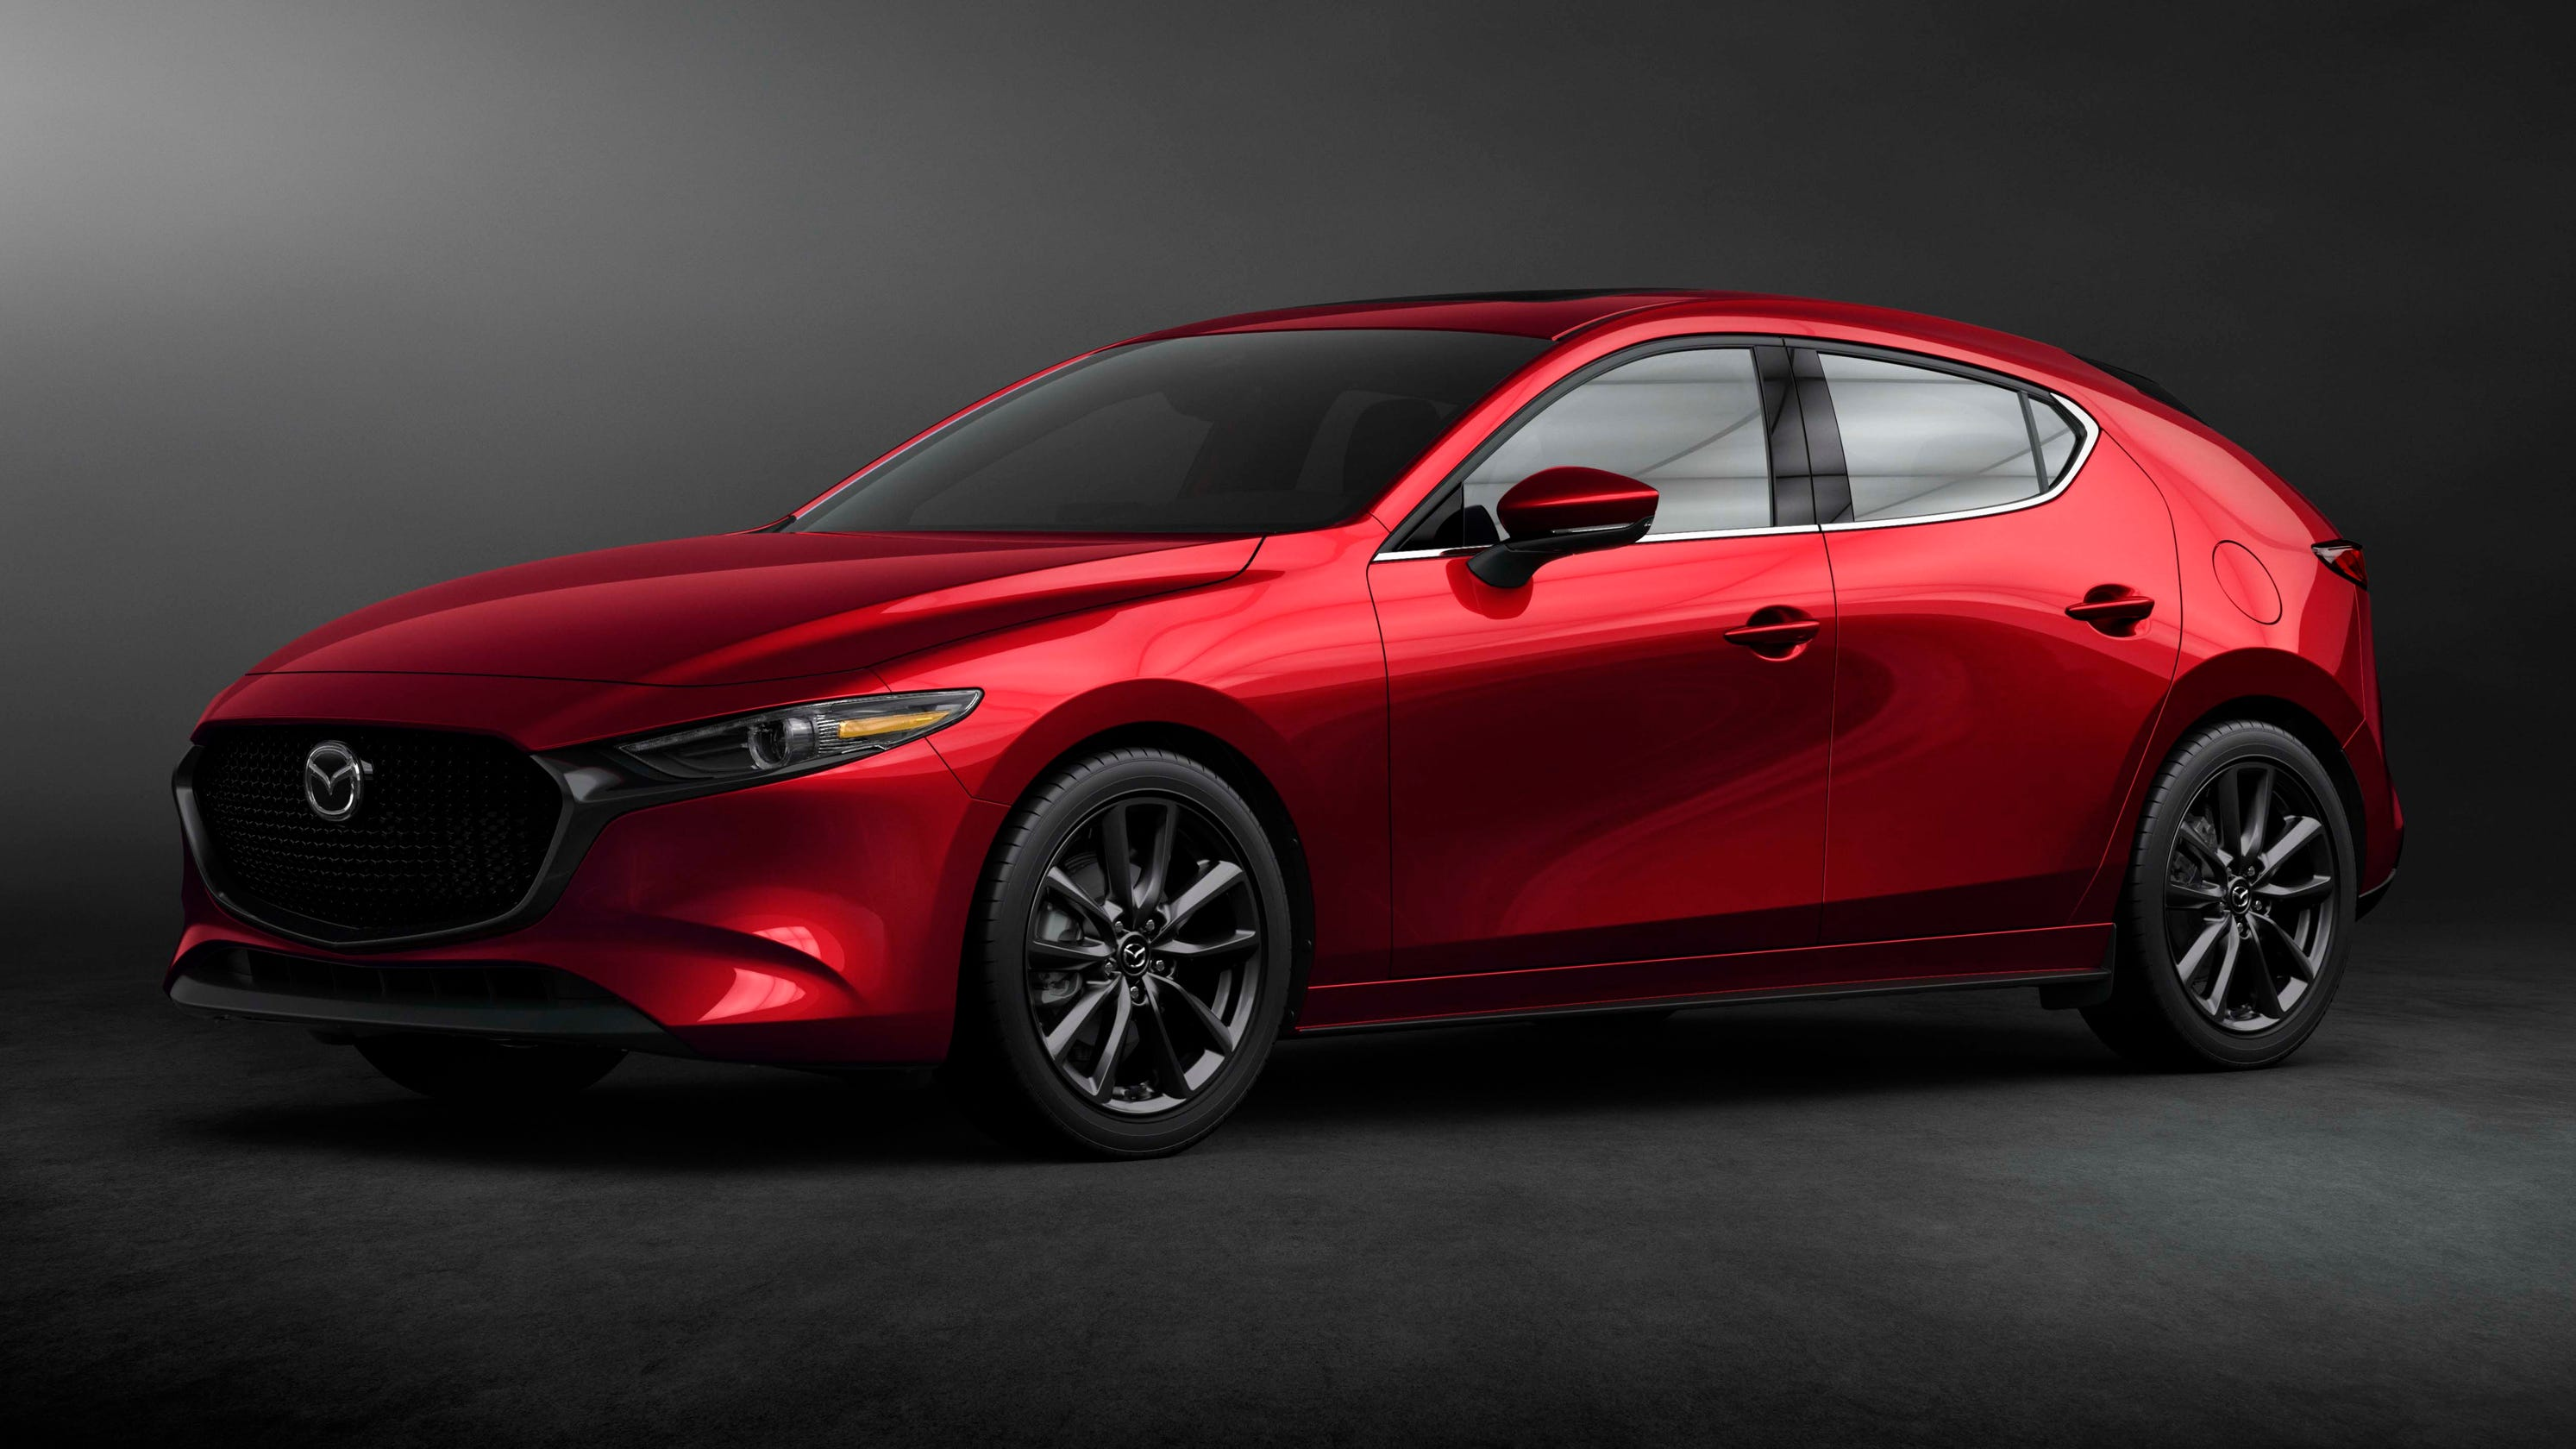 La Show Mazda 3 And Toyota Prius Compacts Make Their Debut